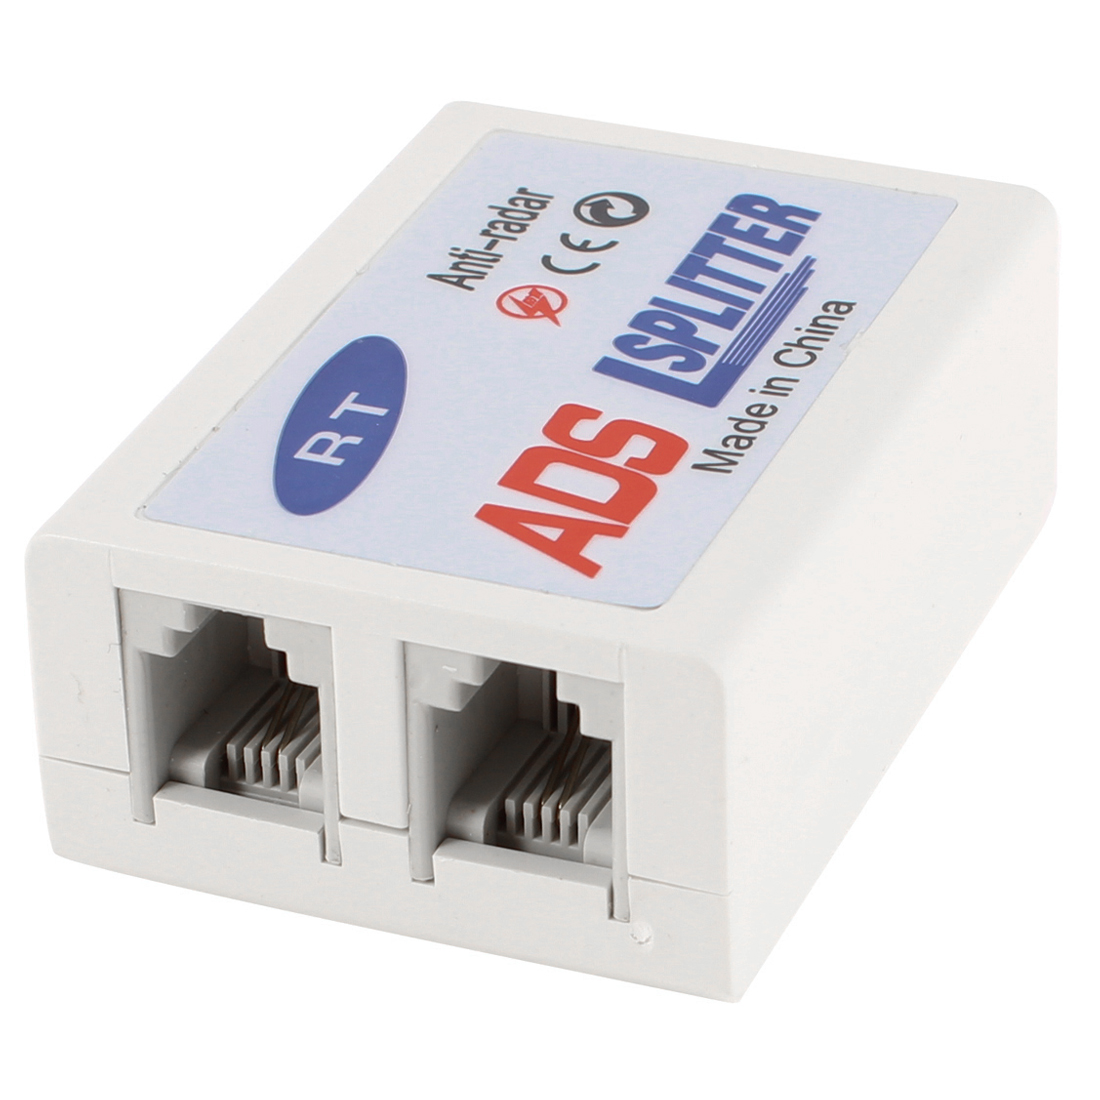 Off White 1 to 2 RJ11 6P2C Jack Socket ADSL Splitter Filter for Line Phone Modem